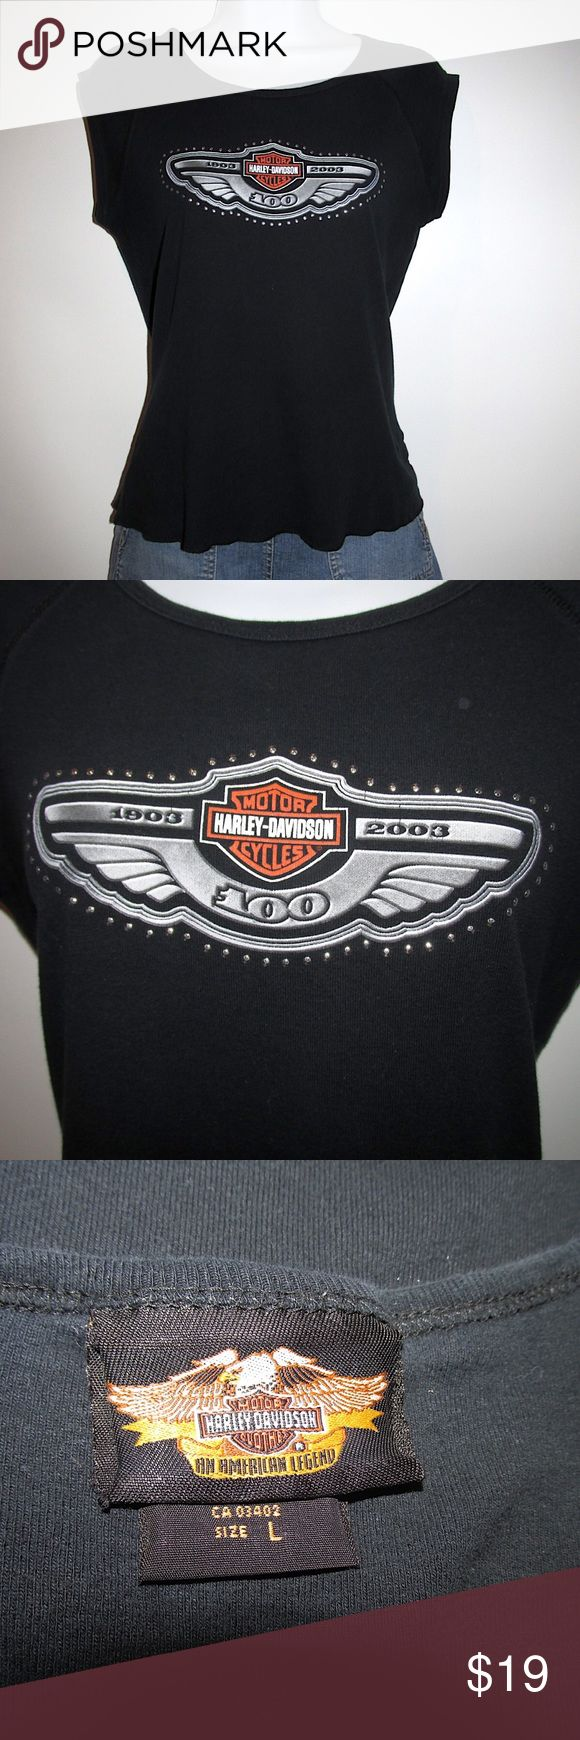 "Harley Davidson Motorcycles Studded T-Shirt EUC Fantastic Harley Davidson Motorcycles studded t-shirt top, ladies size Large.  Scoop neckline  Front studded logo design  Measurements  Length shoulder to hem: 22""  Width across front at underarm: 18""  Sleeve length: 2""  Fabric: 100% cotton  Garment care: Machine wash cold inside out, tumble dry low  From a smoke and pet free home Harley-Davidson Tops Tees - Short Sleeve"